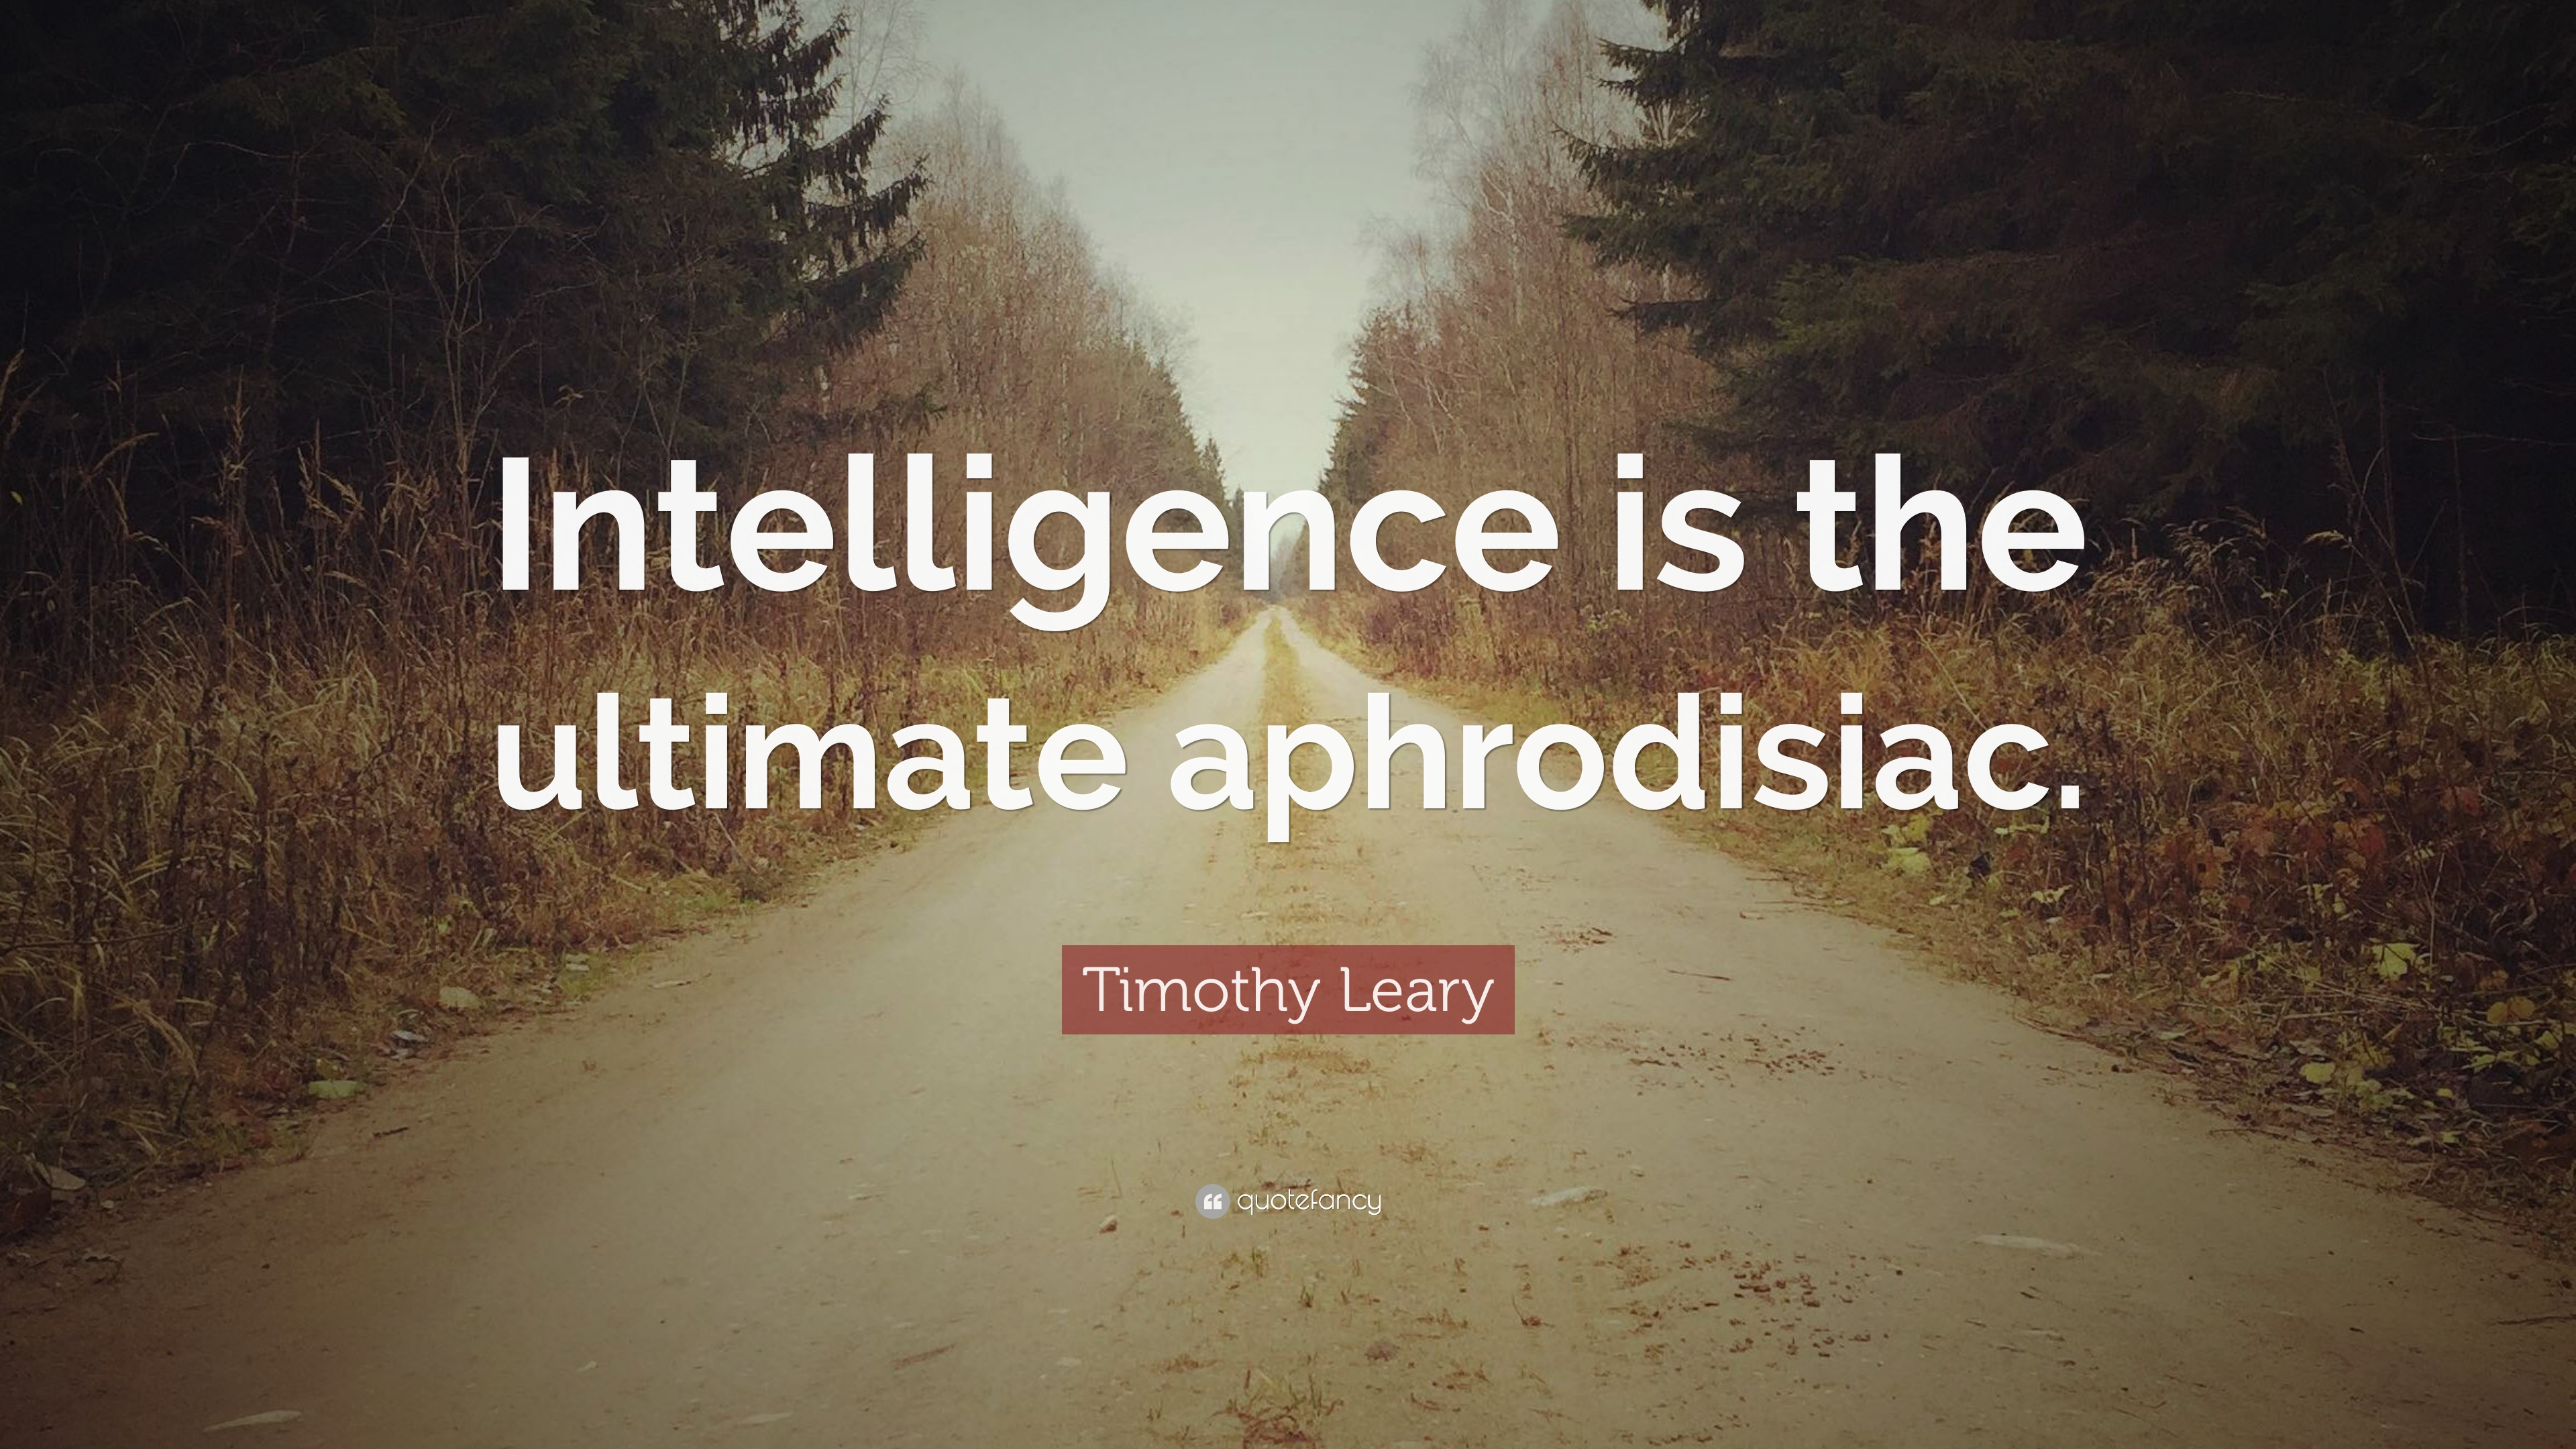 Intelligence is the ultimate aphrodisiac